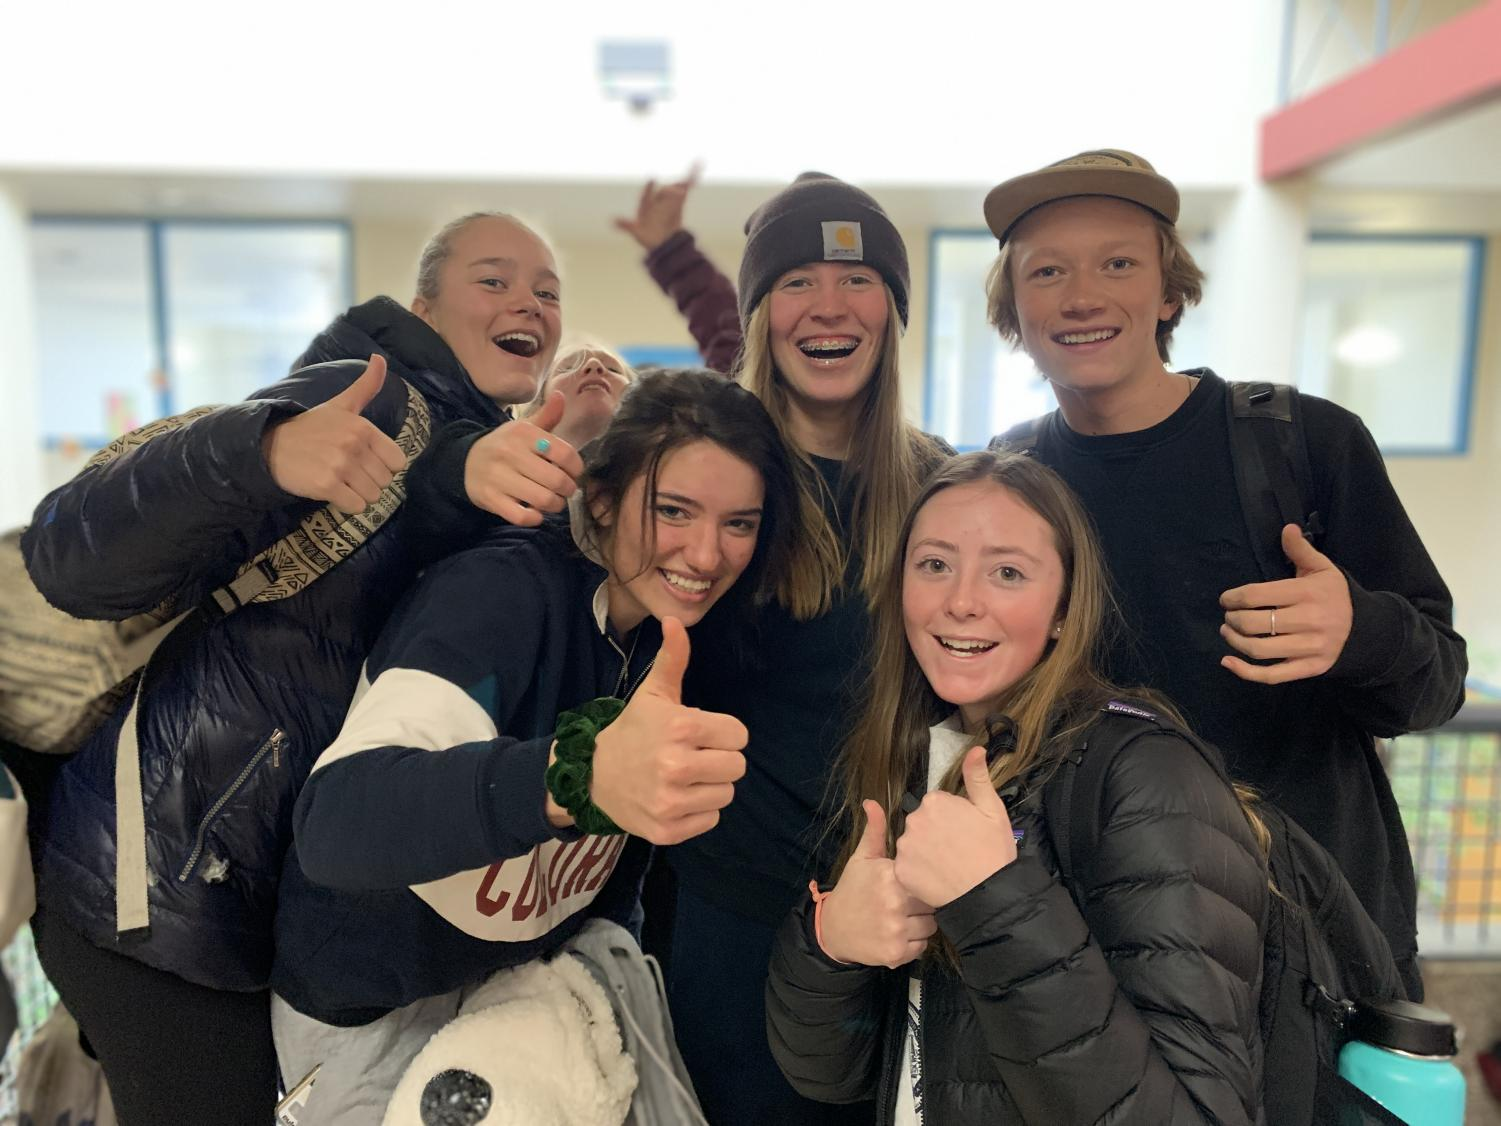 THS sophomores Emery Berry, Ava Hagan, Kaleigh Reggiannini, Tatiana Peccedi and Thorne Harcourt give the new hat allowance a thumbs up.